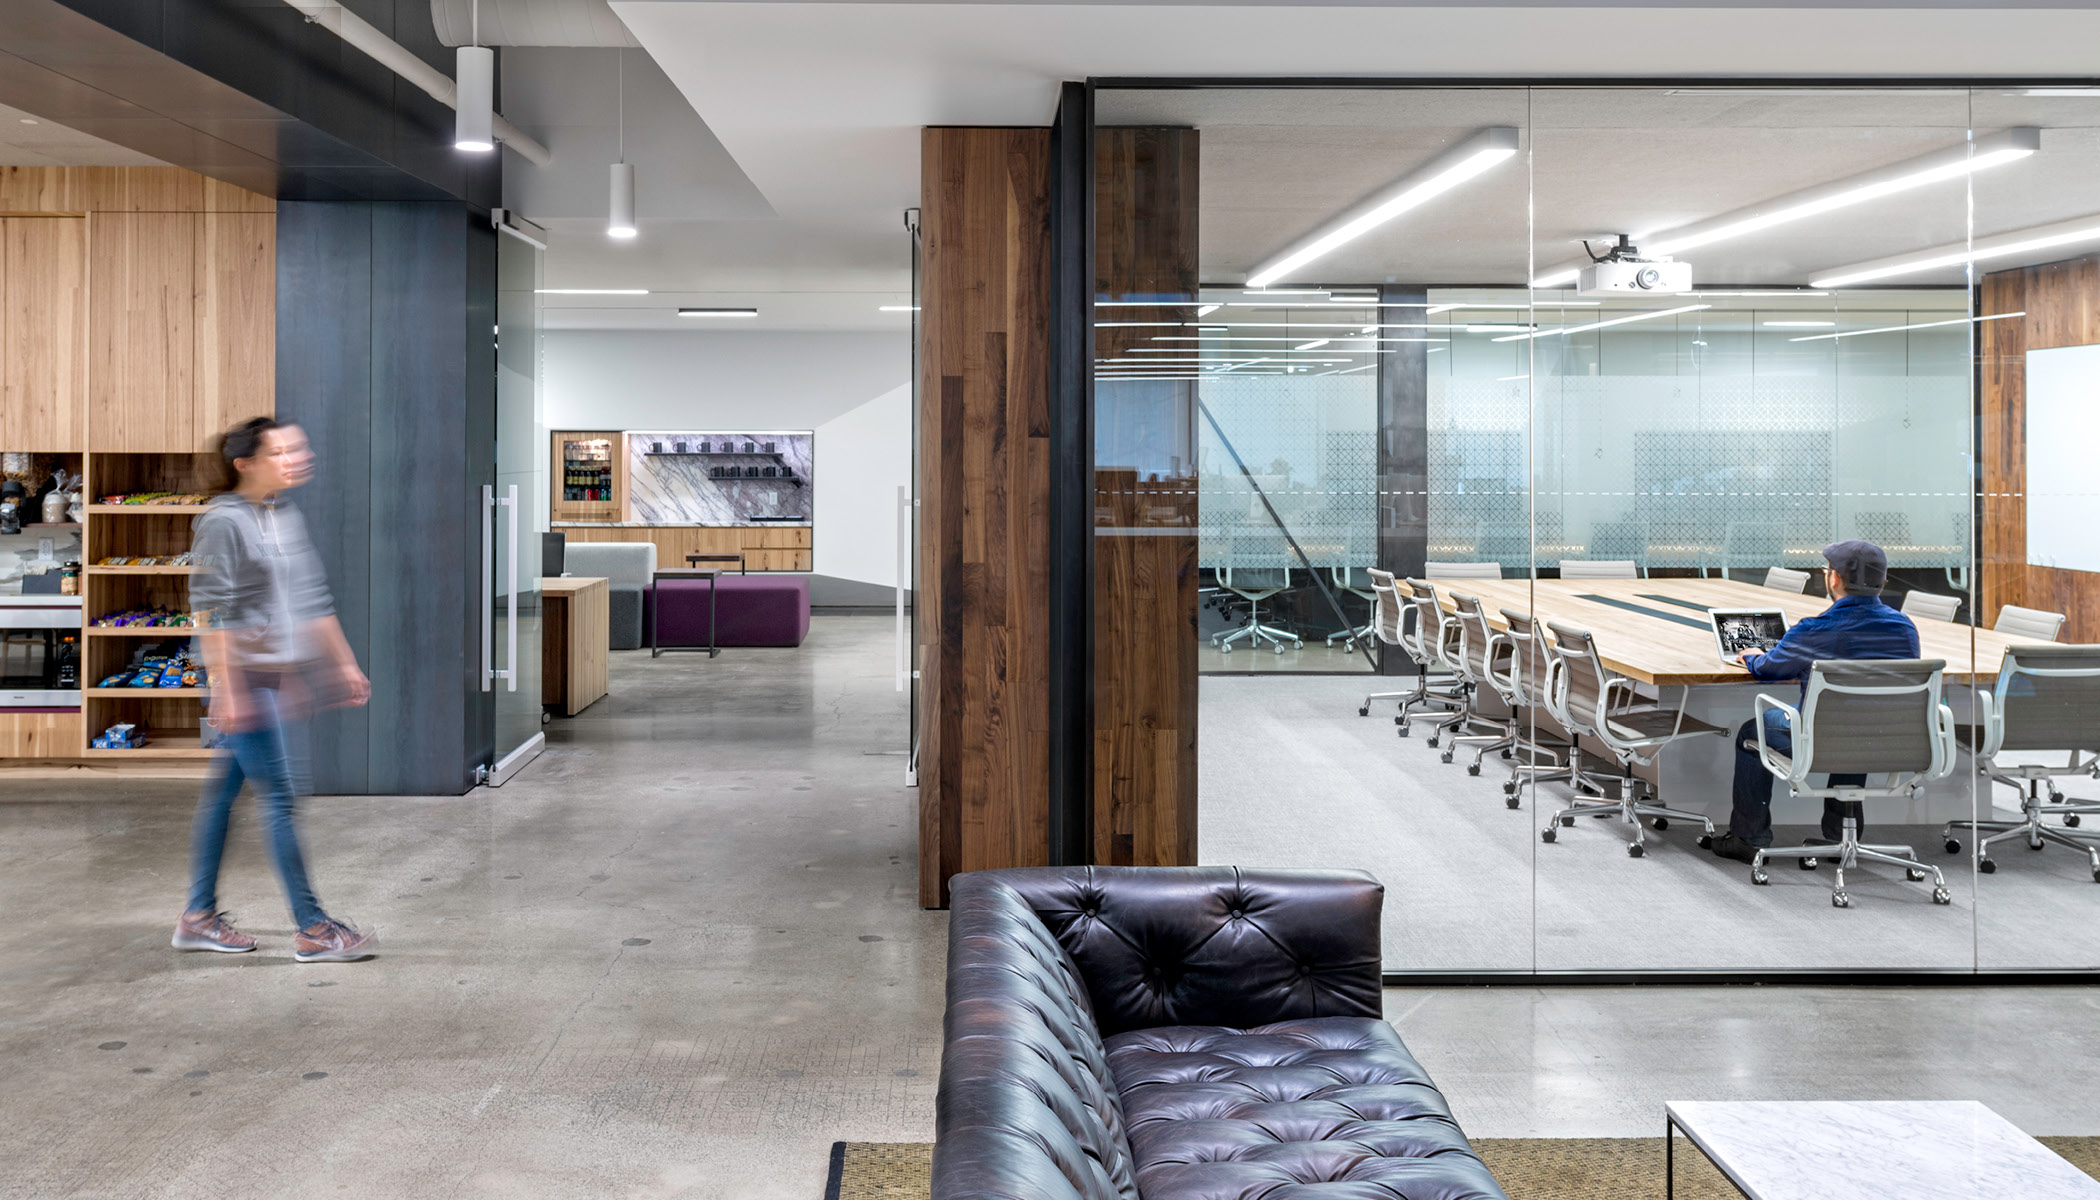 evernote office studio oa. Evernote Office Studio Oa 05. Uber\\u0027s San Francisco Headquarters1. Headquarters T